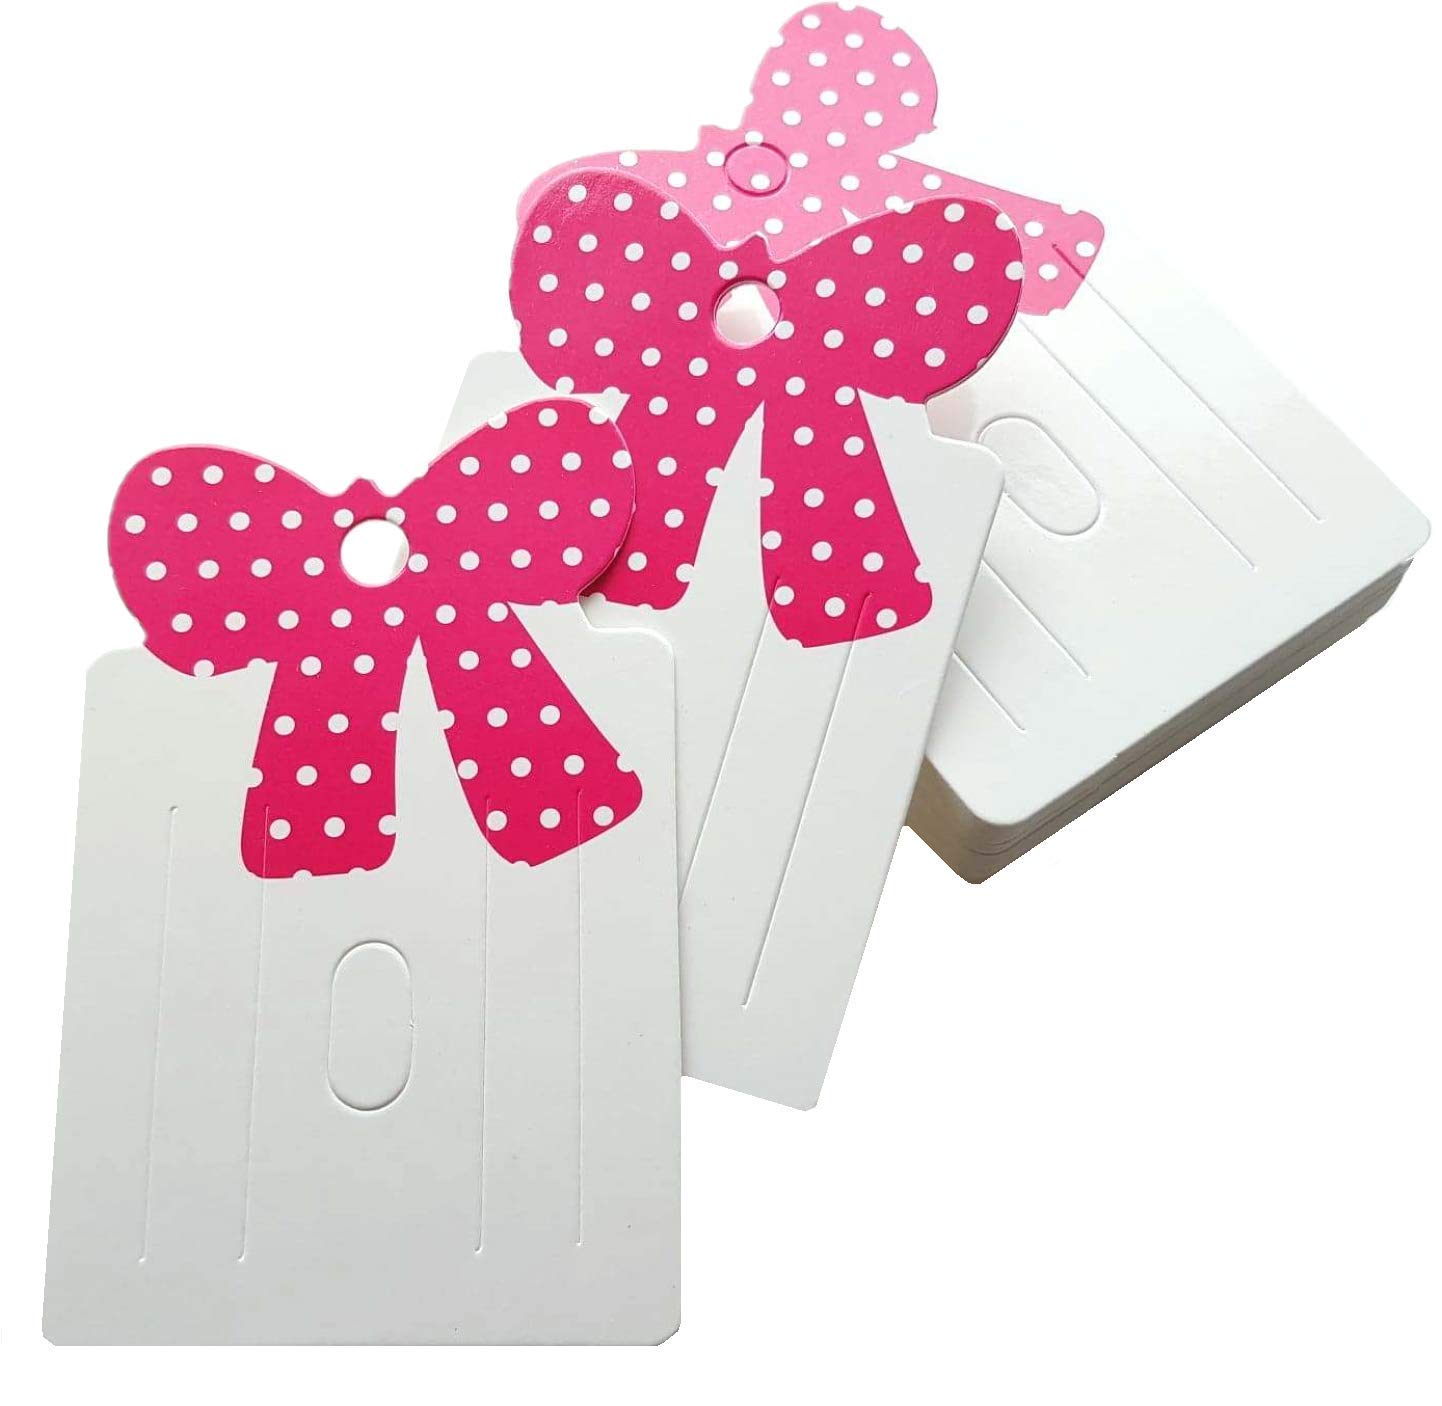 100pcs Hairpin Paper Card Hair Clips Bow Jewelry DIY Display Packaging Cards